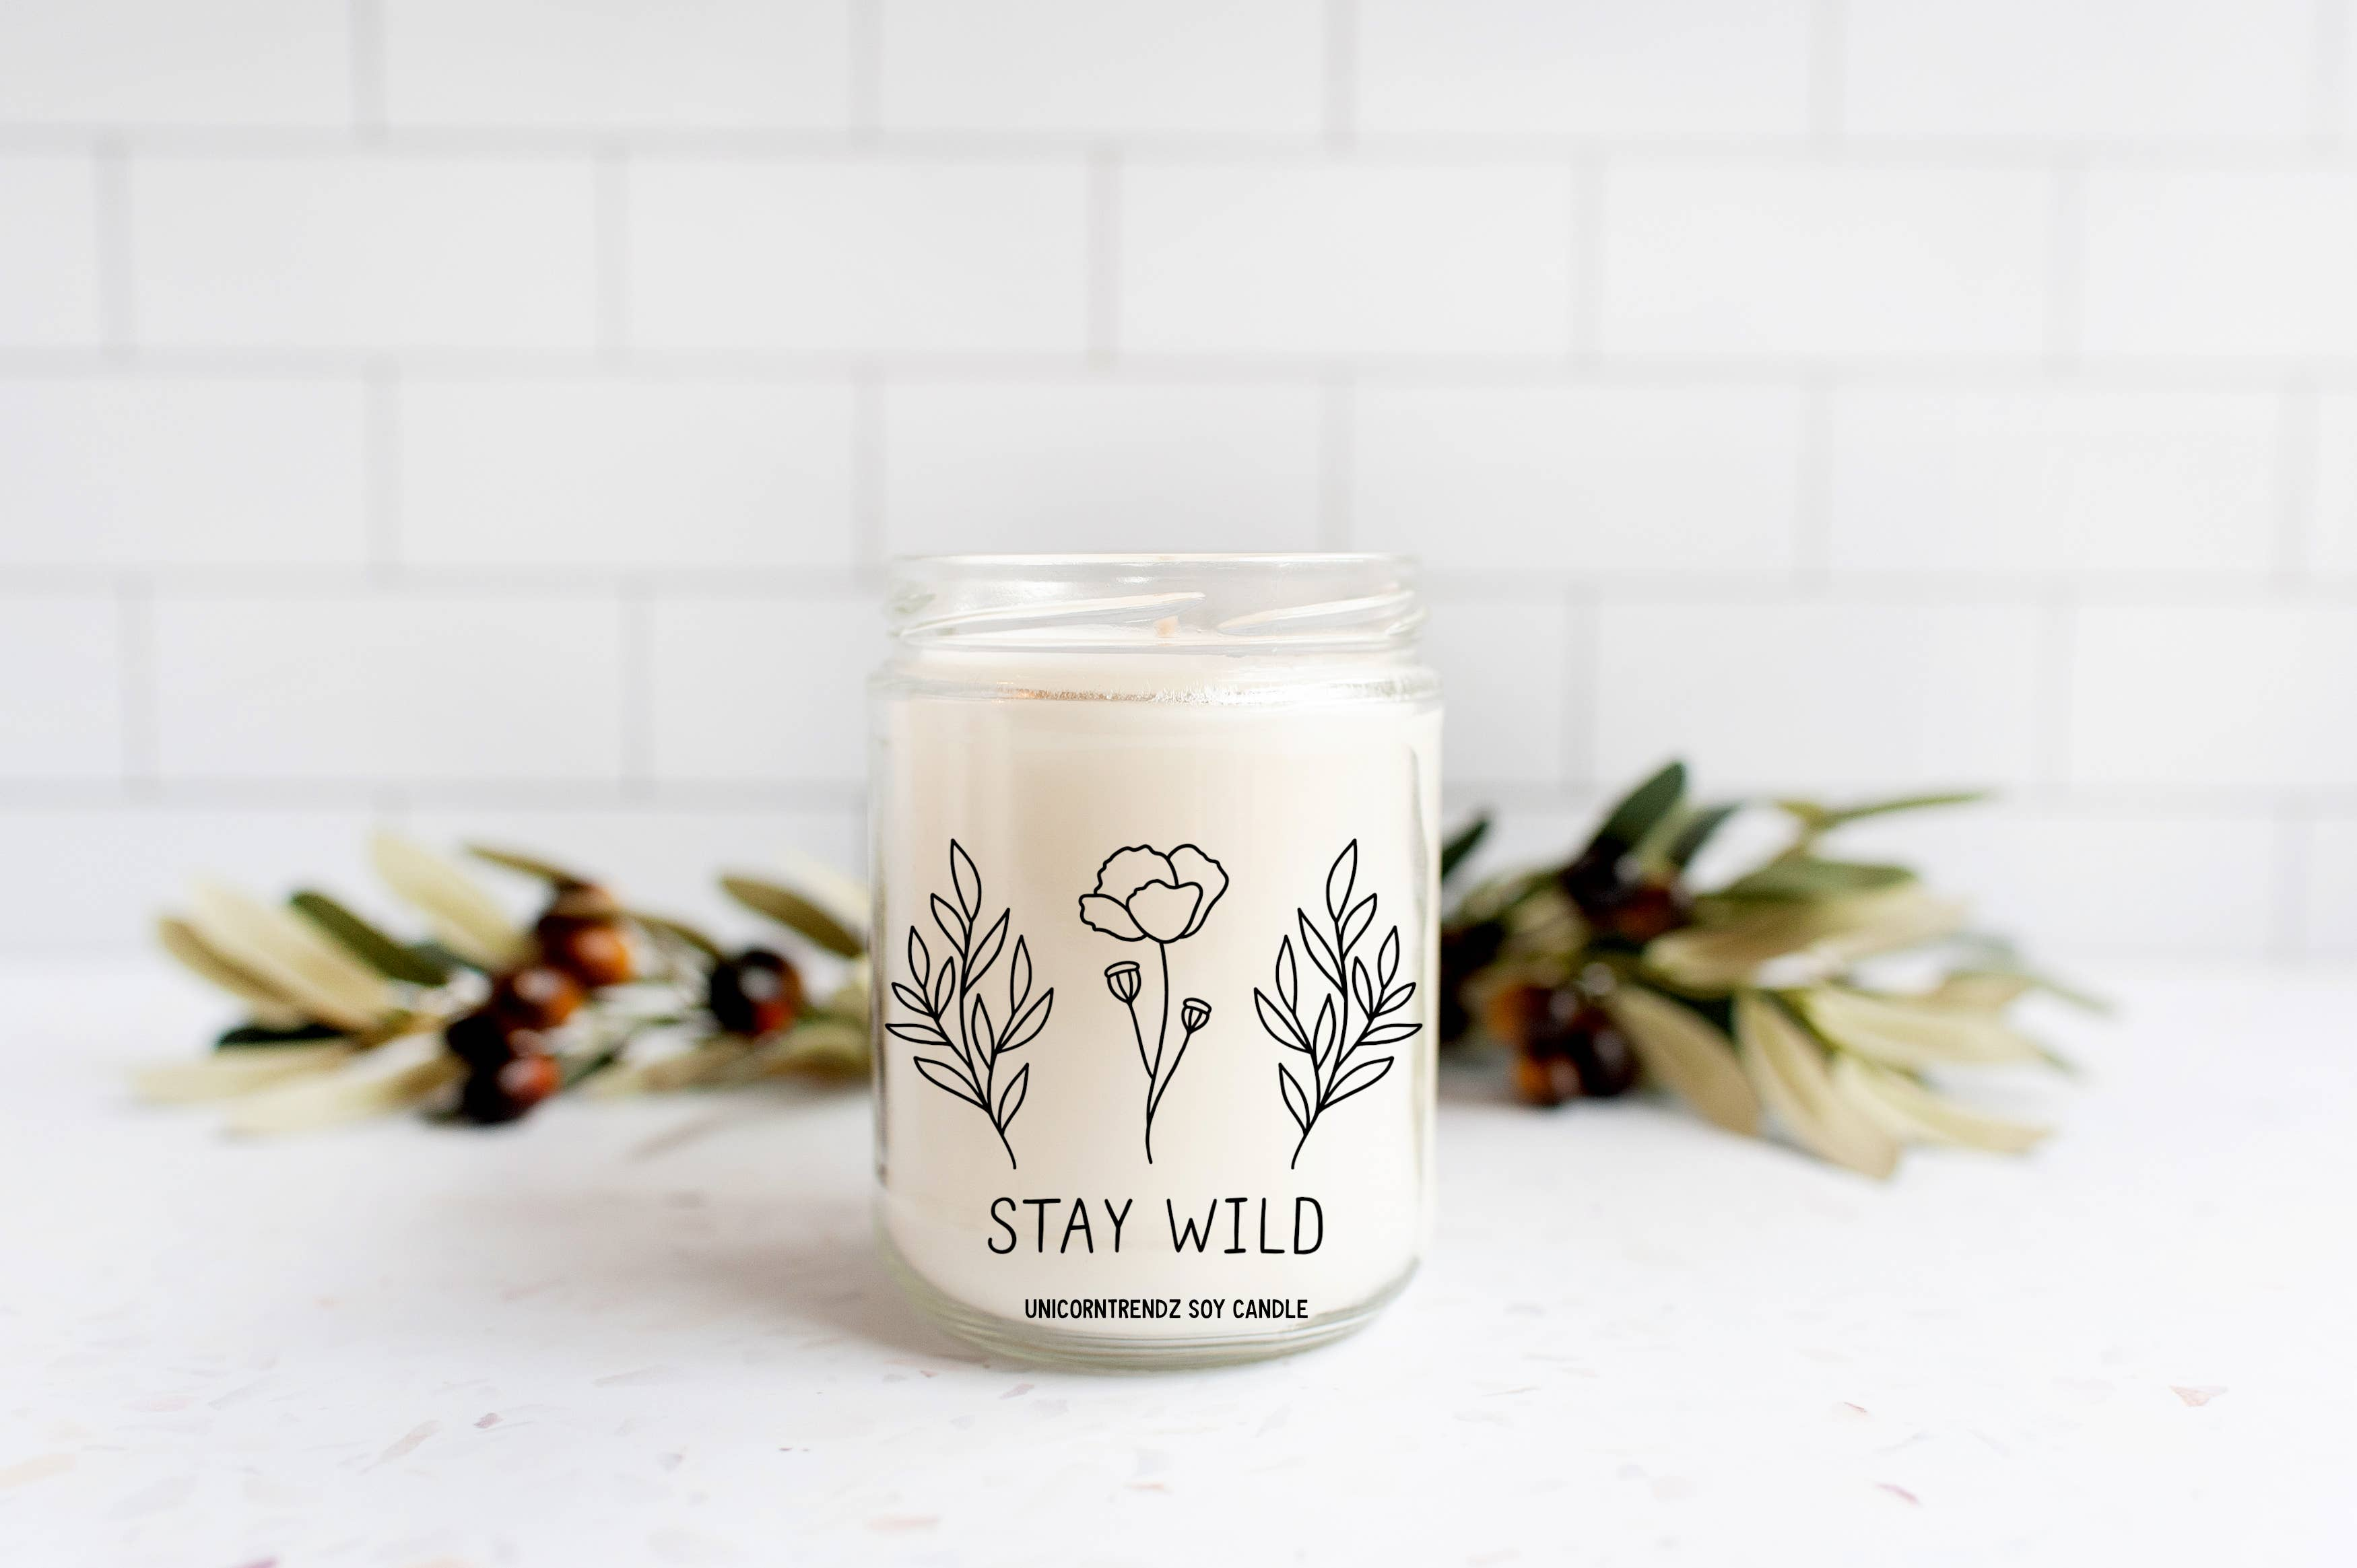 Best Friend Gift Gift Candle Handmade Soy Candle Soy Wax Candle Natural Essence Candle Stone Candle Natural Stone Candle Vegan Candle